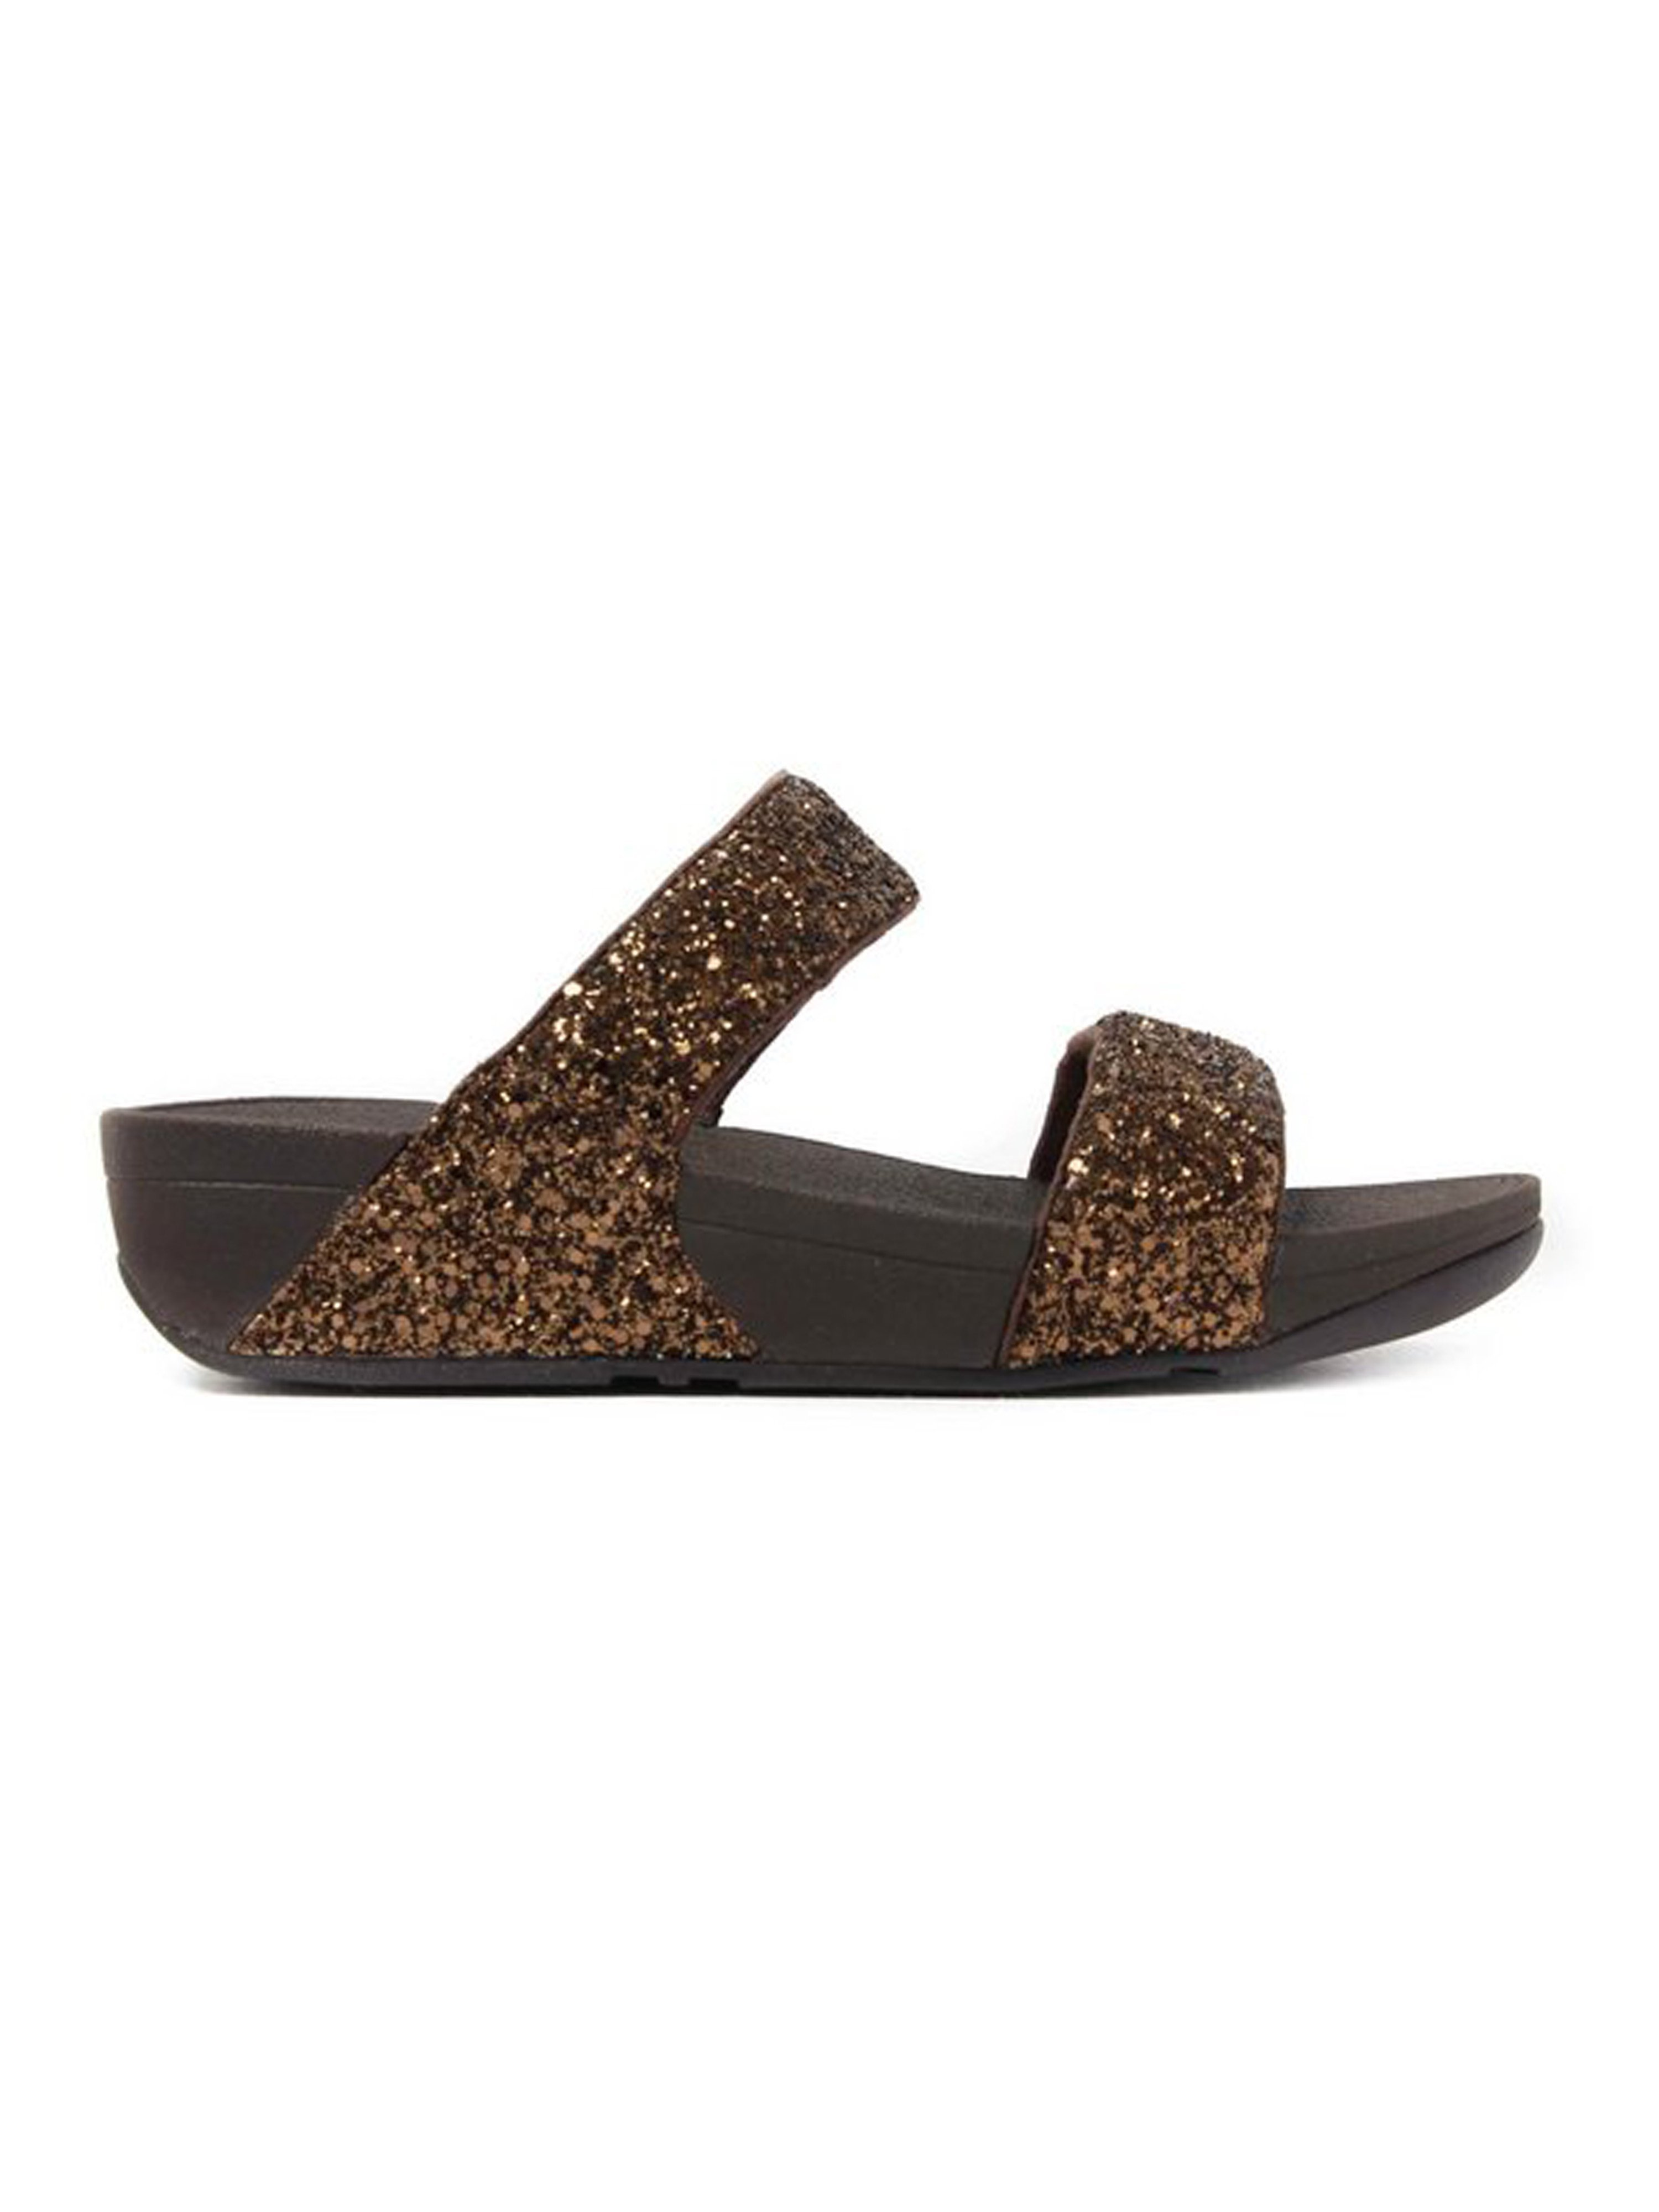 5eb588332031c0 Cloggs Fitflop Sandals